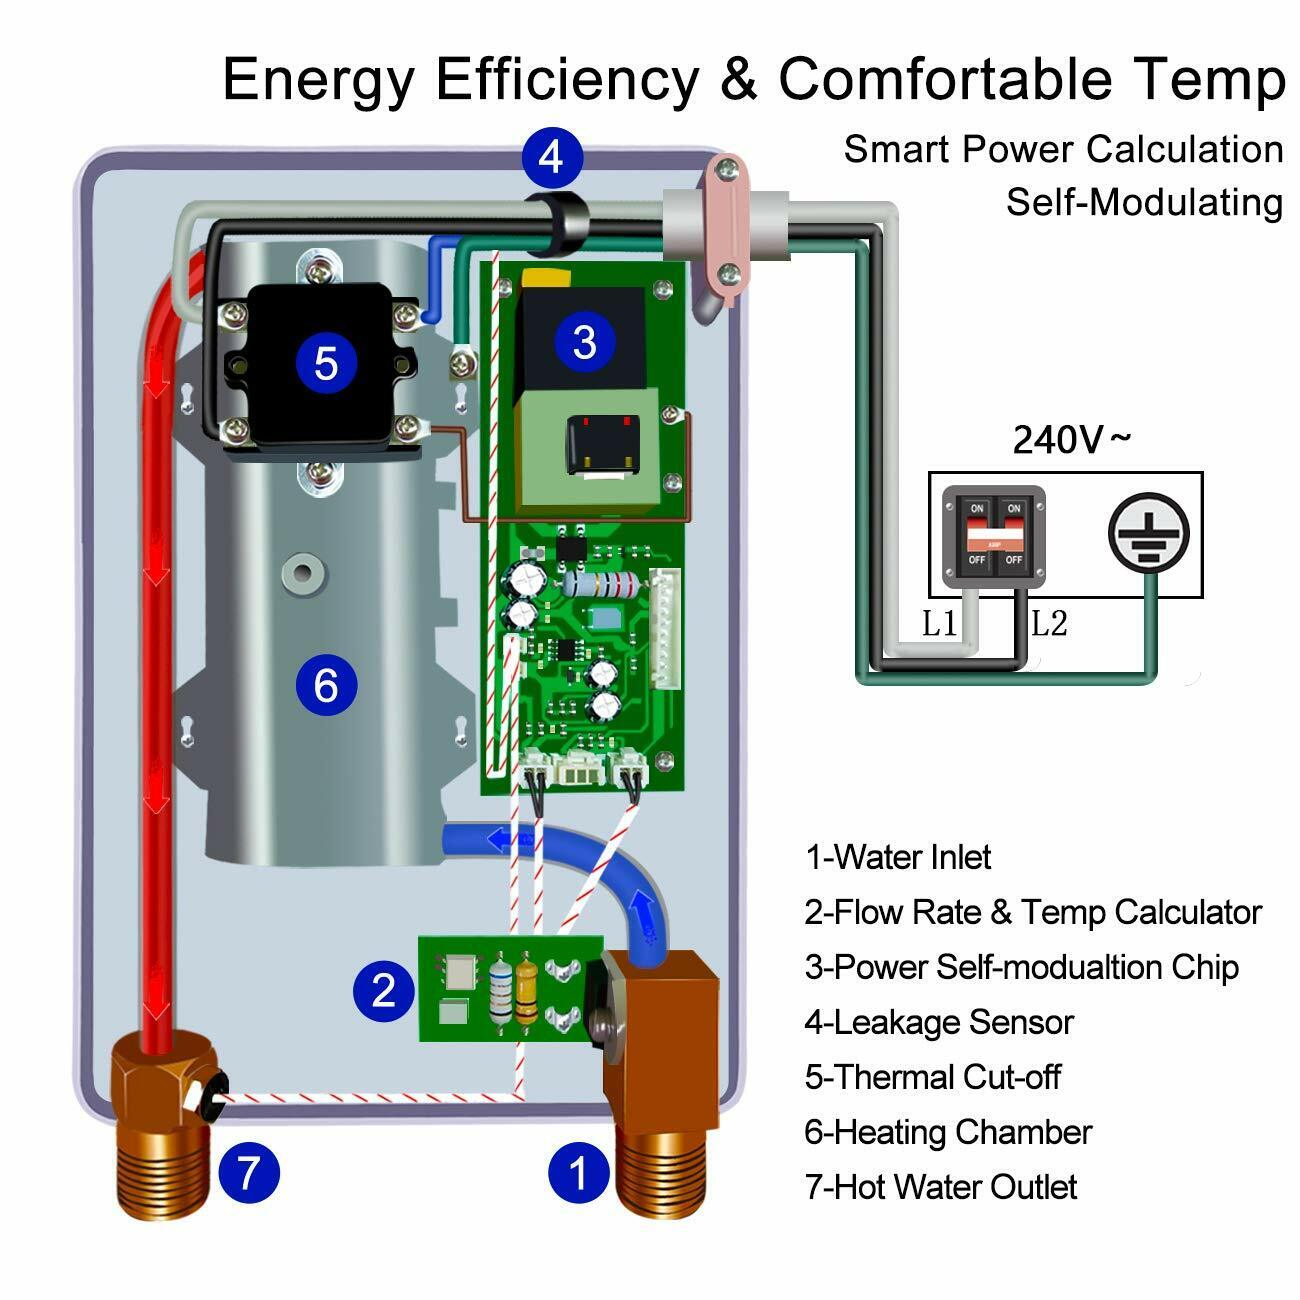 Electric Hot Water Heater Wiring Diagram from i.ebayimg.com